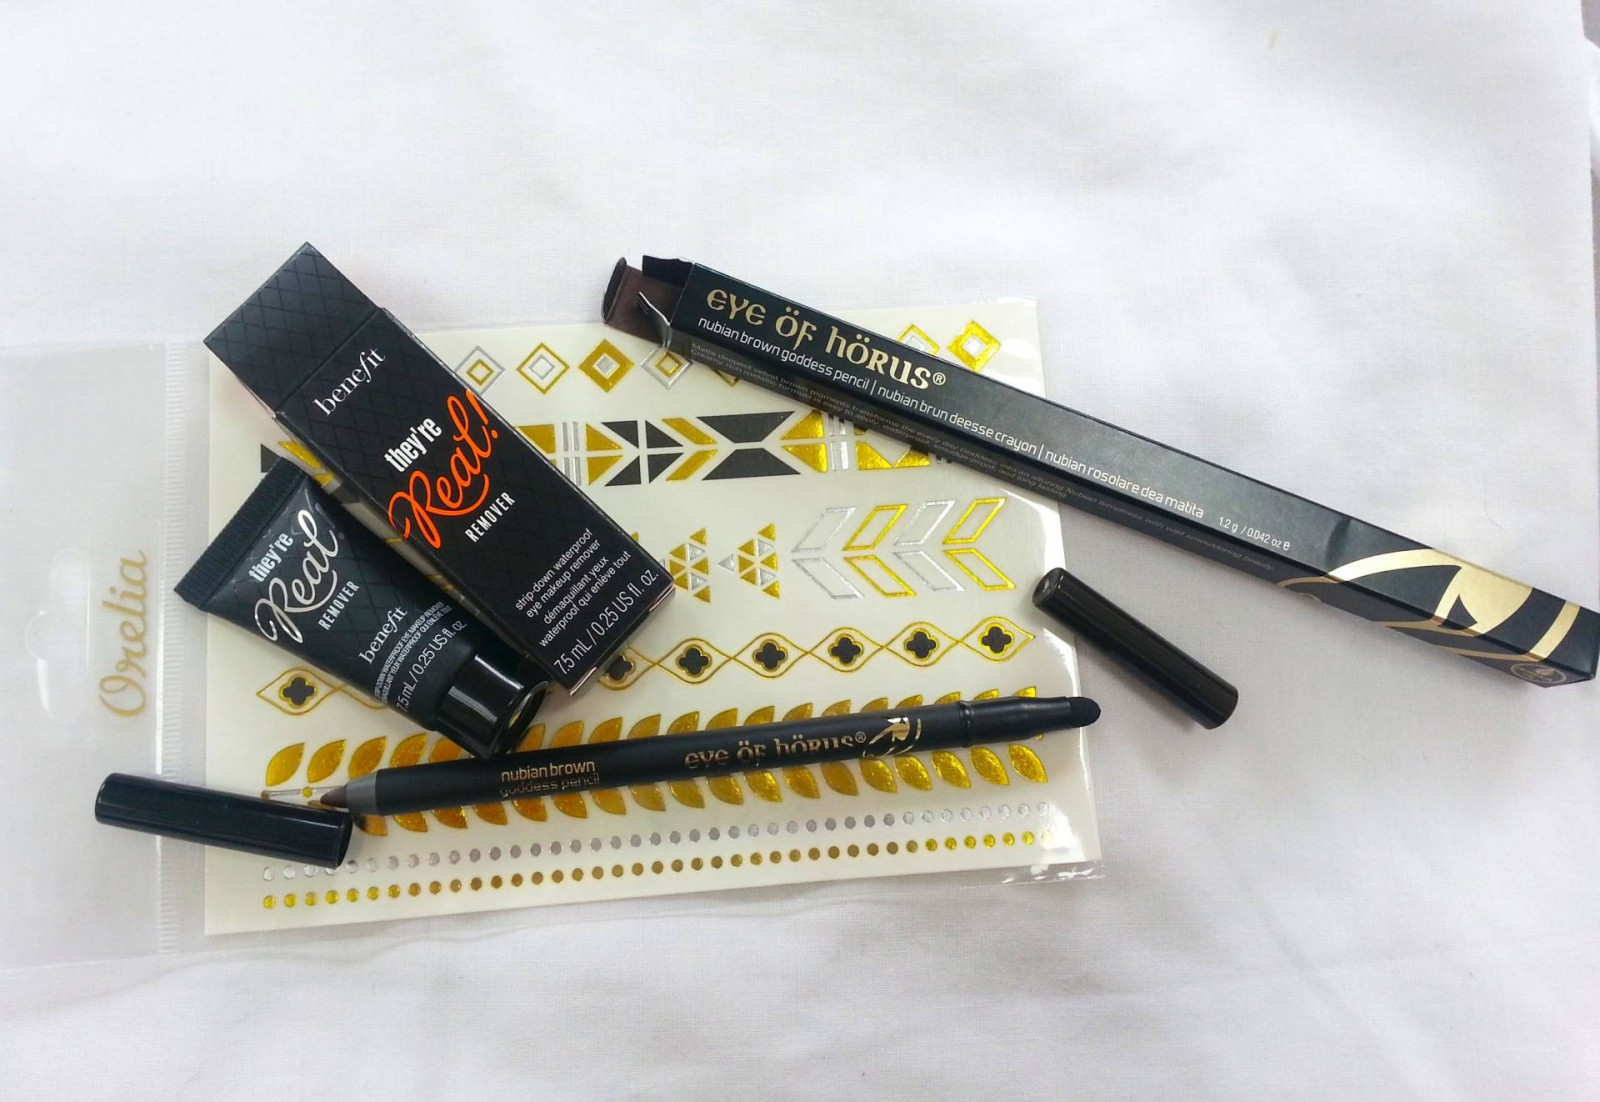 Eye of Horus pencil and Benefit They're real remover